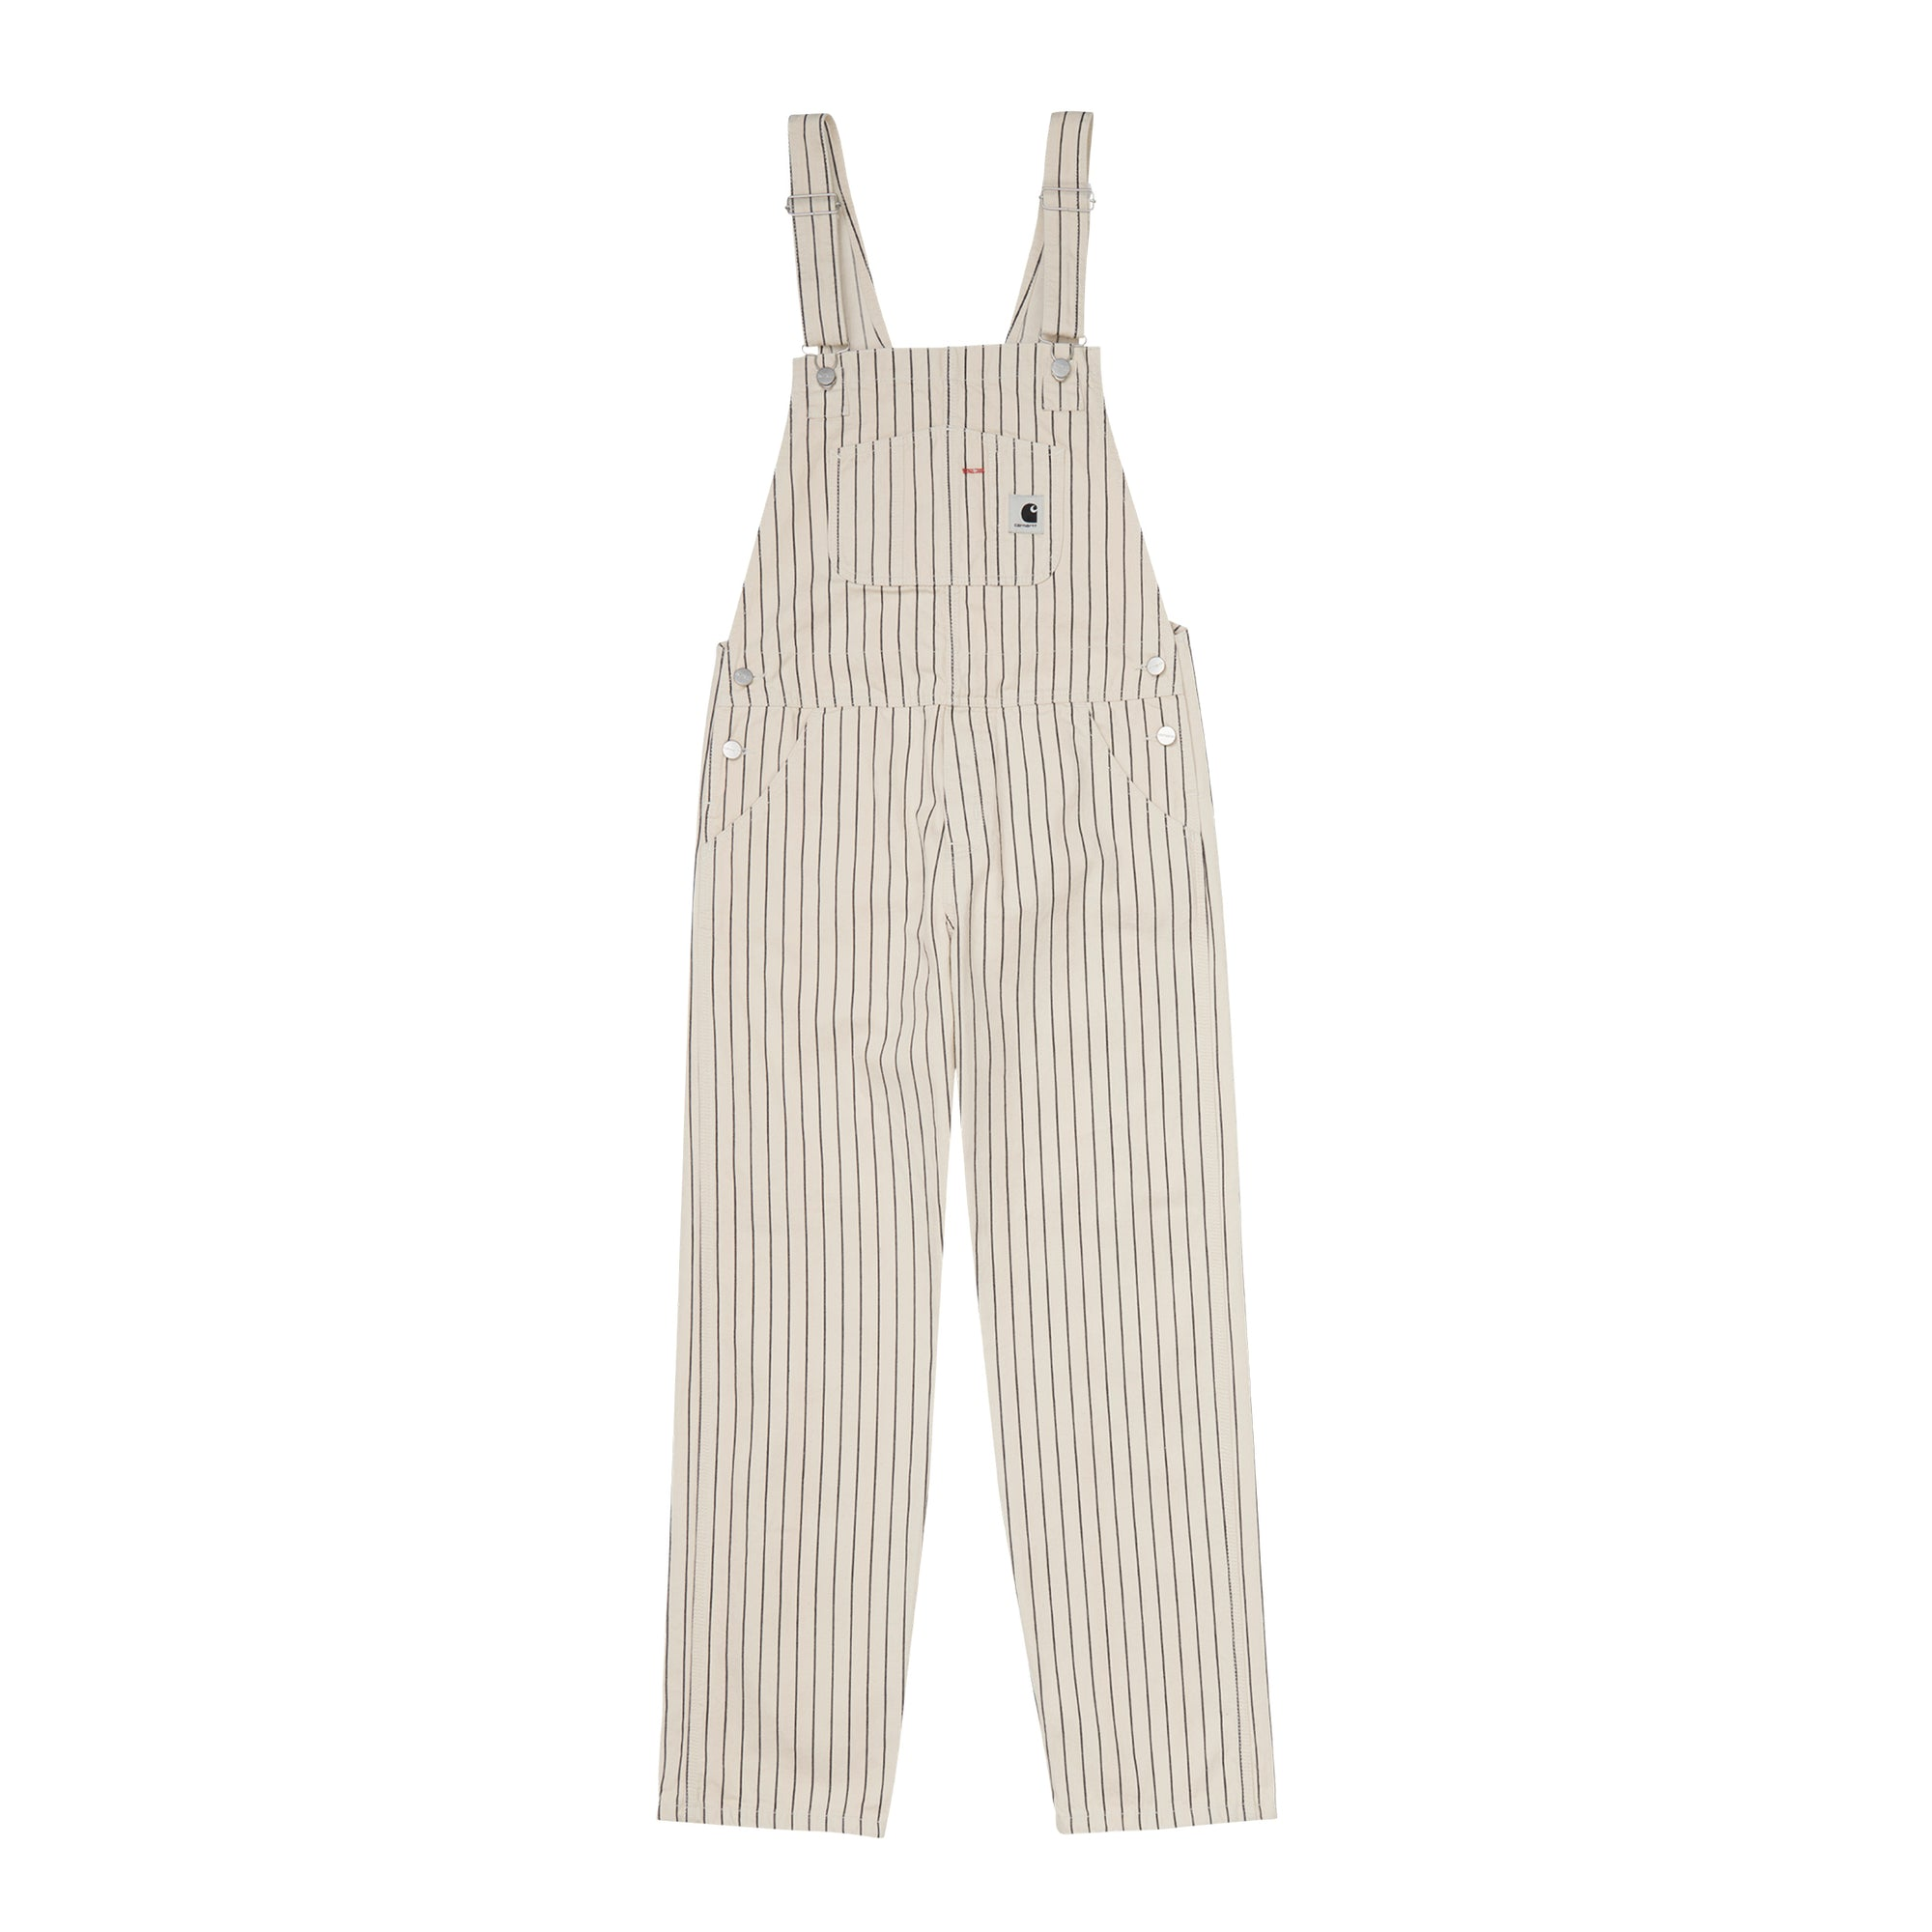 Carhartt WIP Womens Trade Overall: Hickory Stripe: Wax / Black - The Union Project